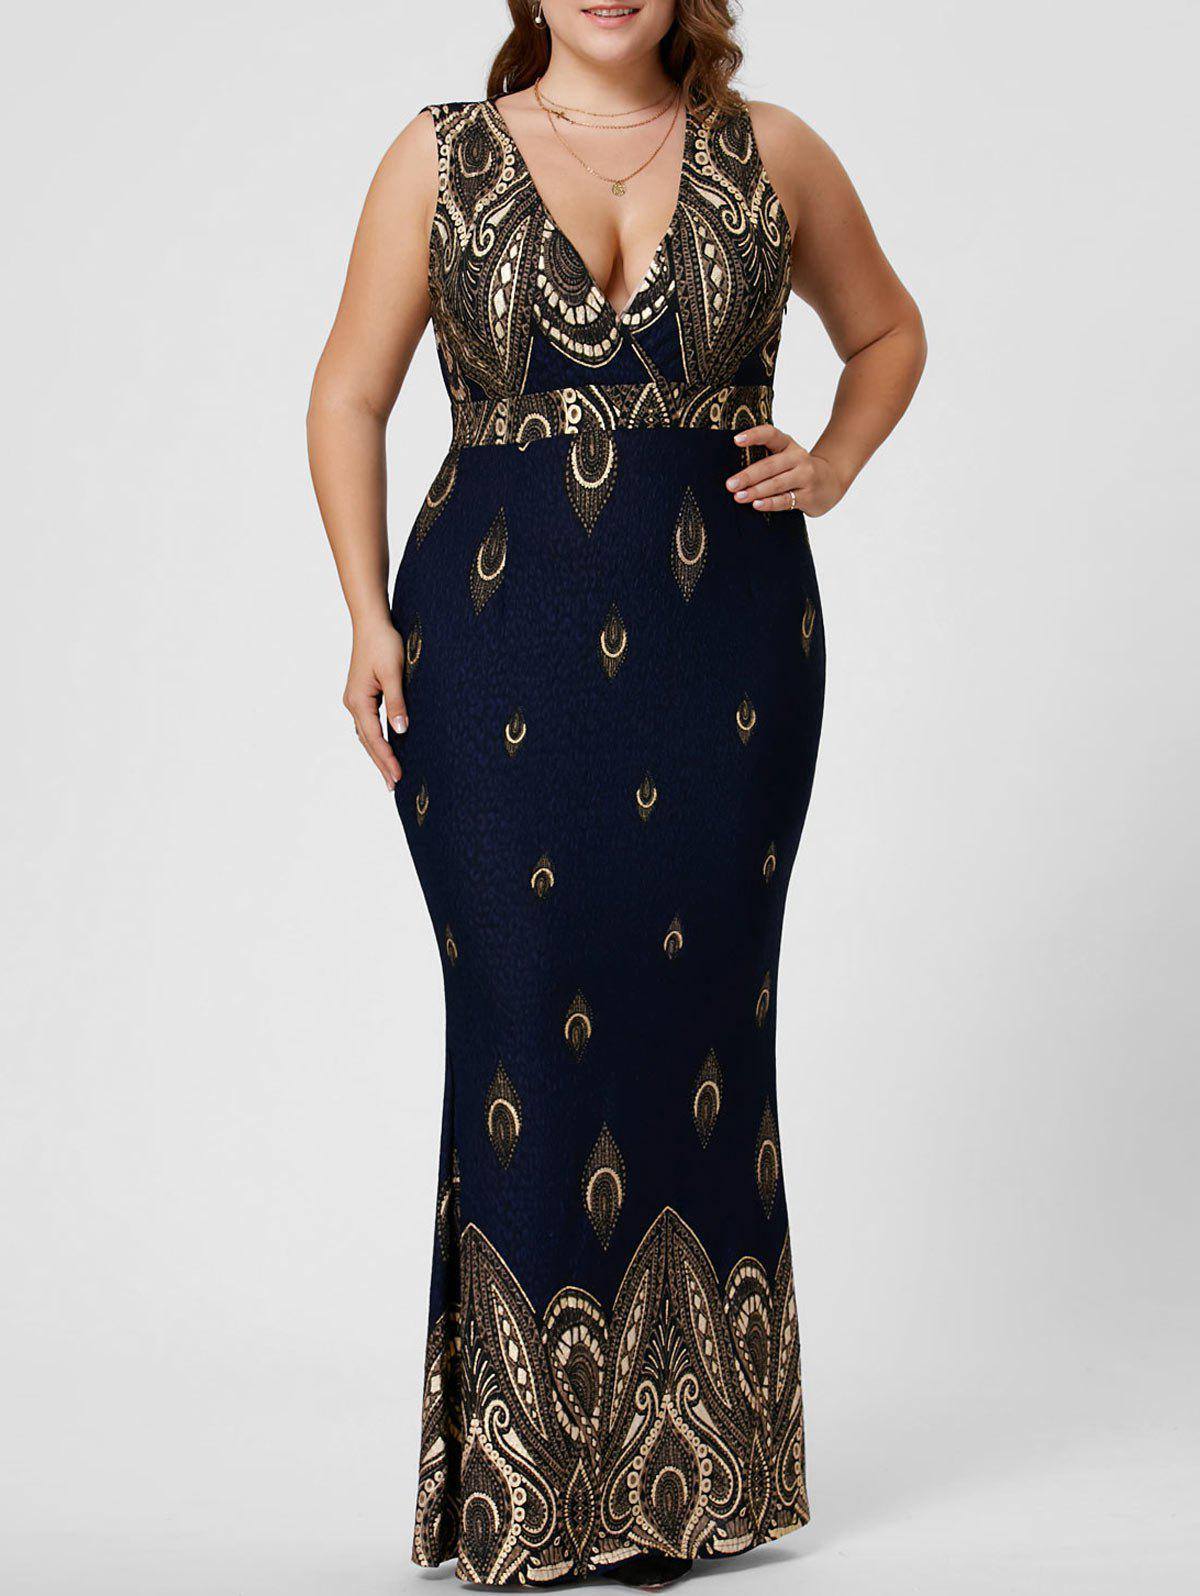 Plus Size Plunging Sleeveless Mermaid Party DressWOMEN<br><br>Size: 4XL; Color: DEEP BLUE; Style: Brief; Material: Polyester; Silhouette: Trumpet/Mermaid; Dresses Length: Ankle-Length; Neckline: Plunging Neck; Sleeve Length: Sleeveless; Pattern Type: Others; With Belt: No; Season: Fall,Spring,Summer; Weight: 0.3500kg; Package Contents: 1 x Dress;